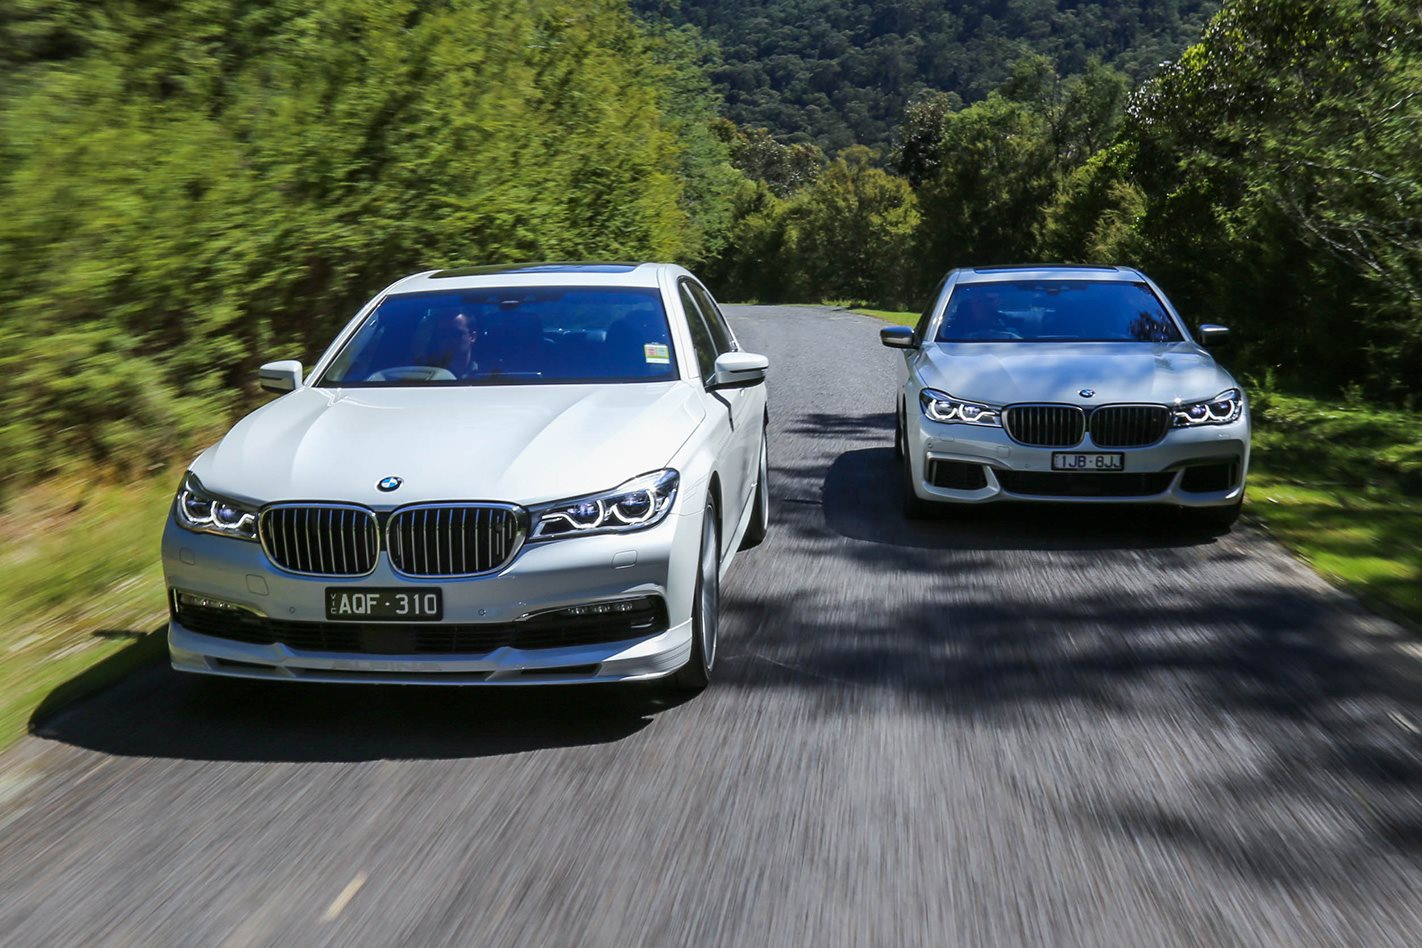 2018 Bmw M760li Alpina B7 Road Tested